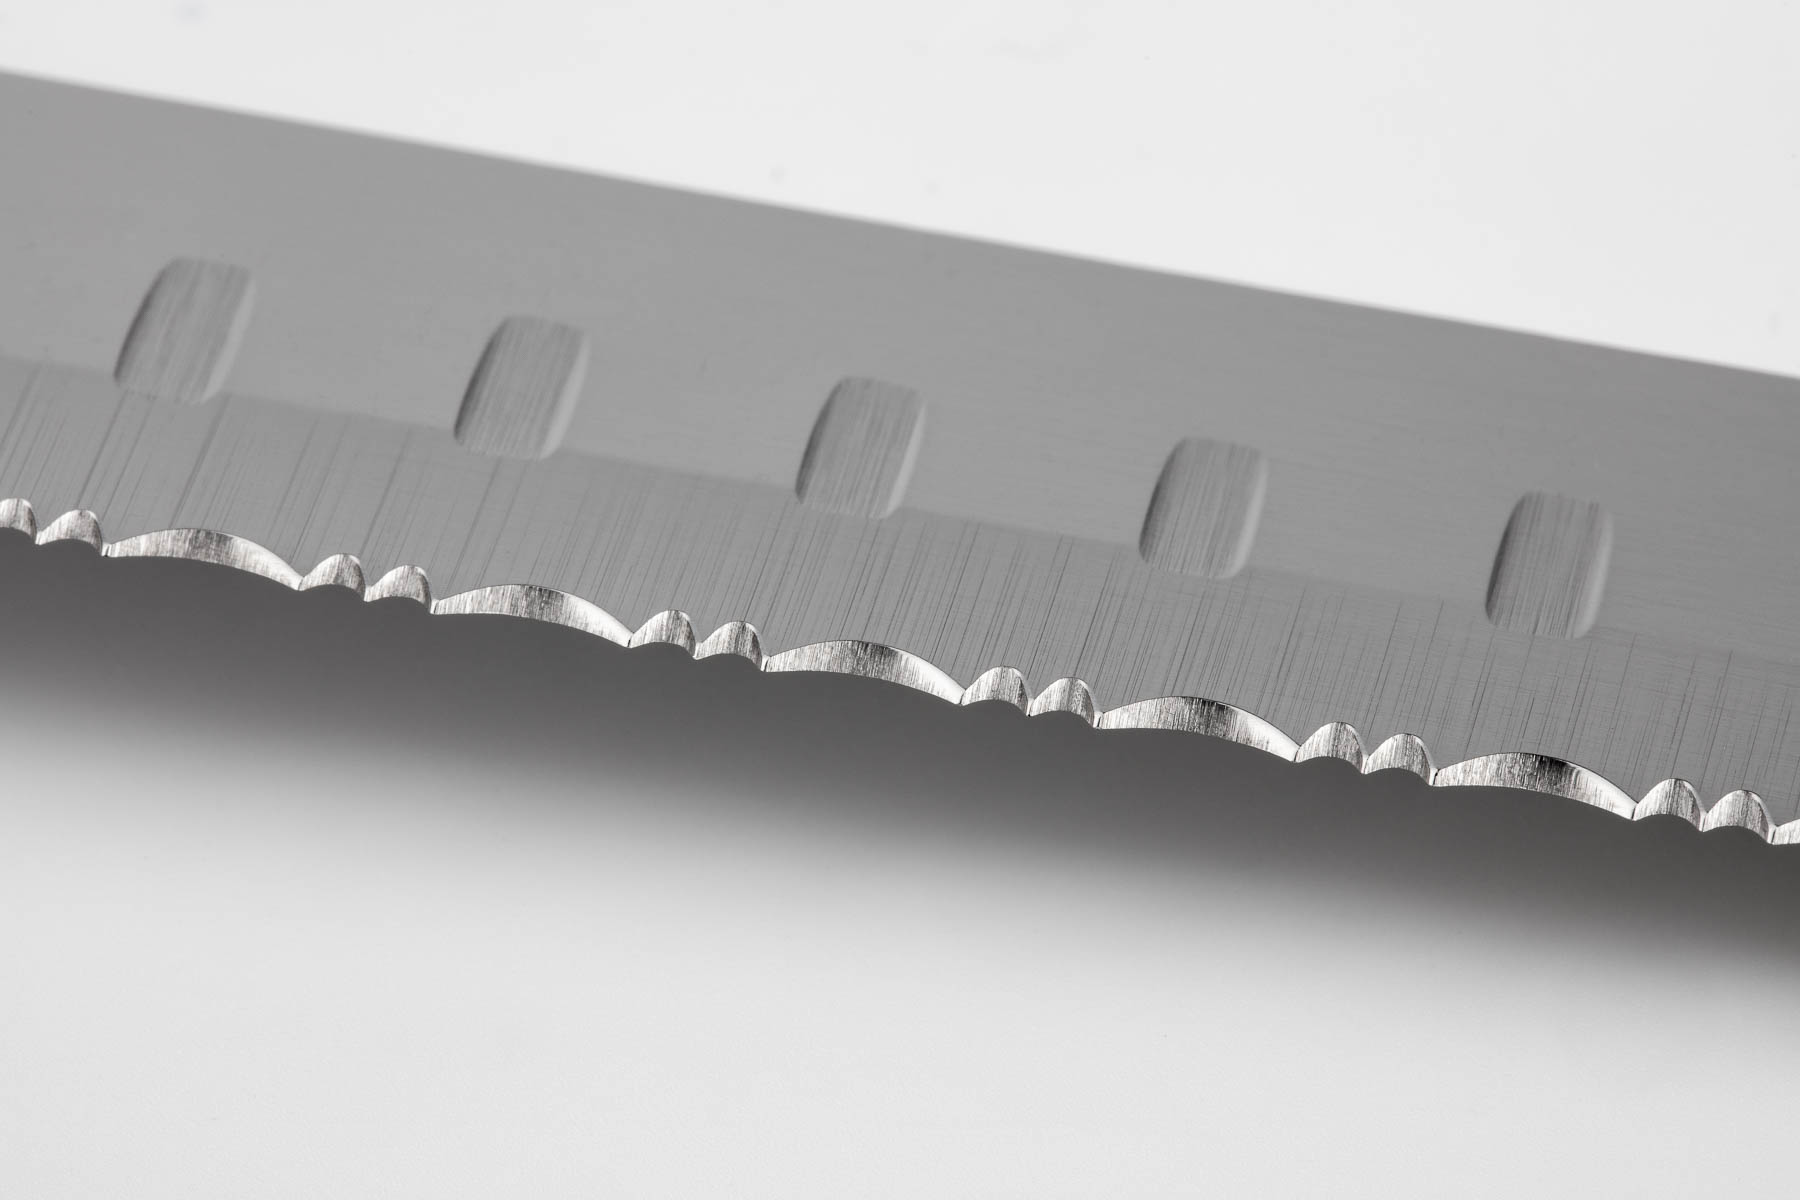 Longer Knife Blade Closeup View - Reflective product photography sample